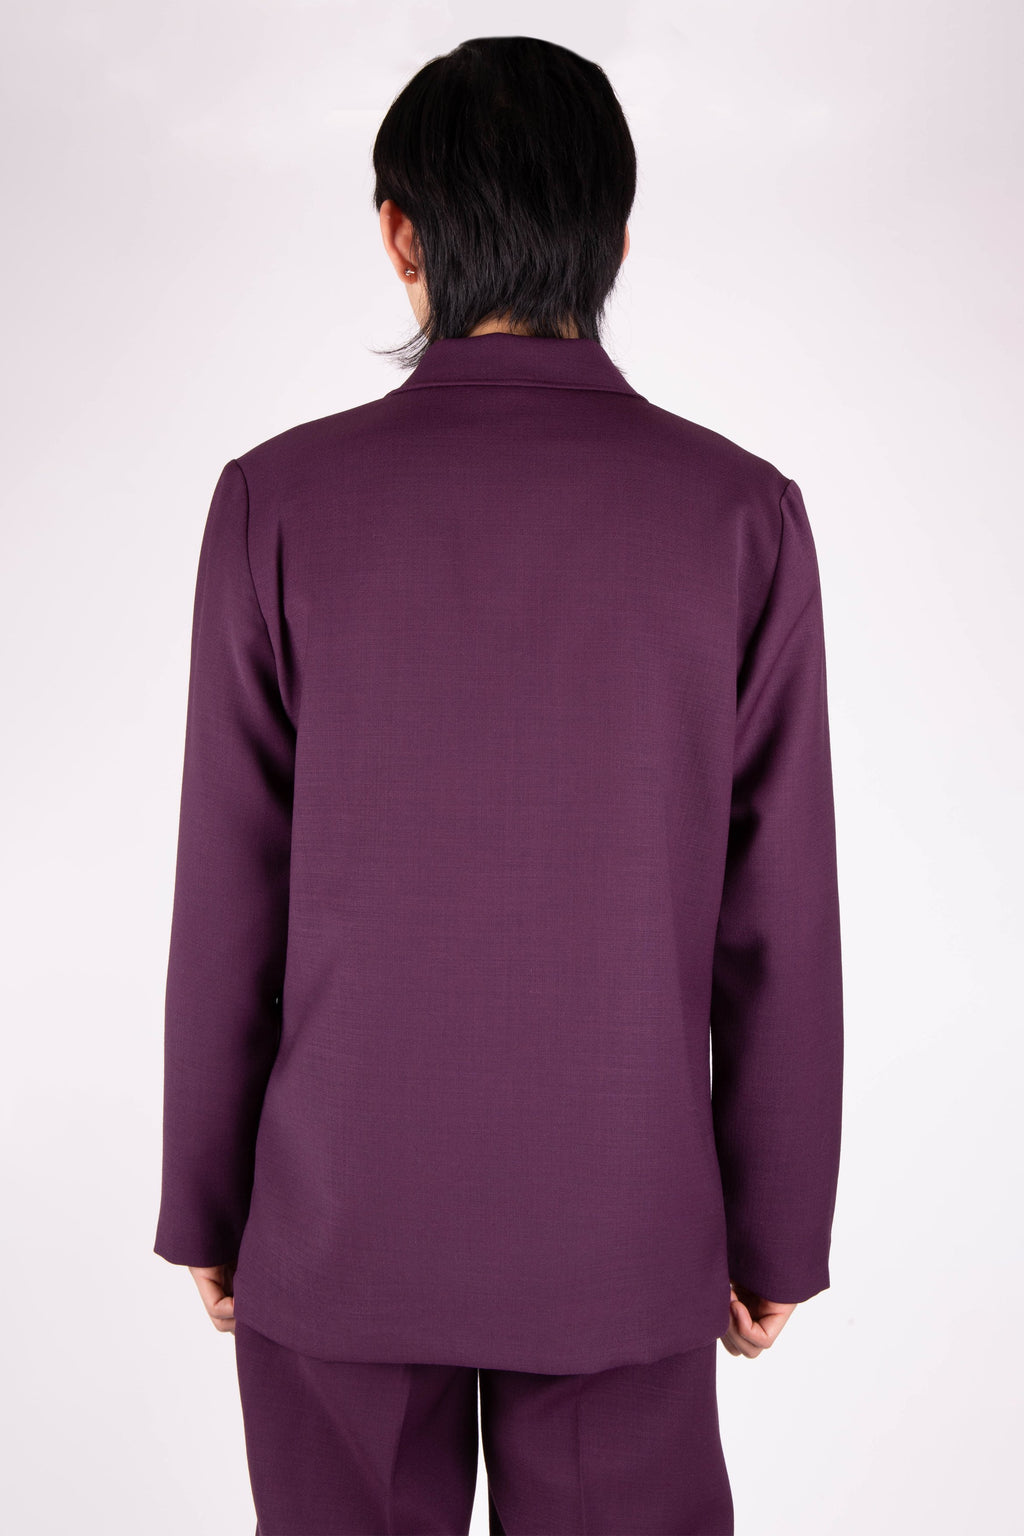 Box Jacket Aubergine Wool | CHECKS DOWNTOWN